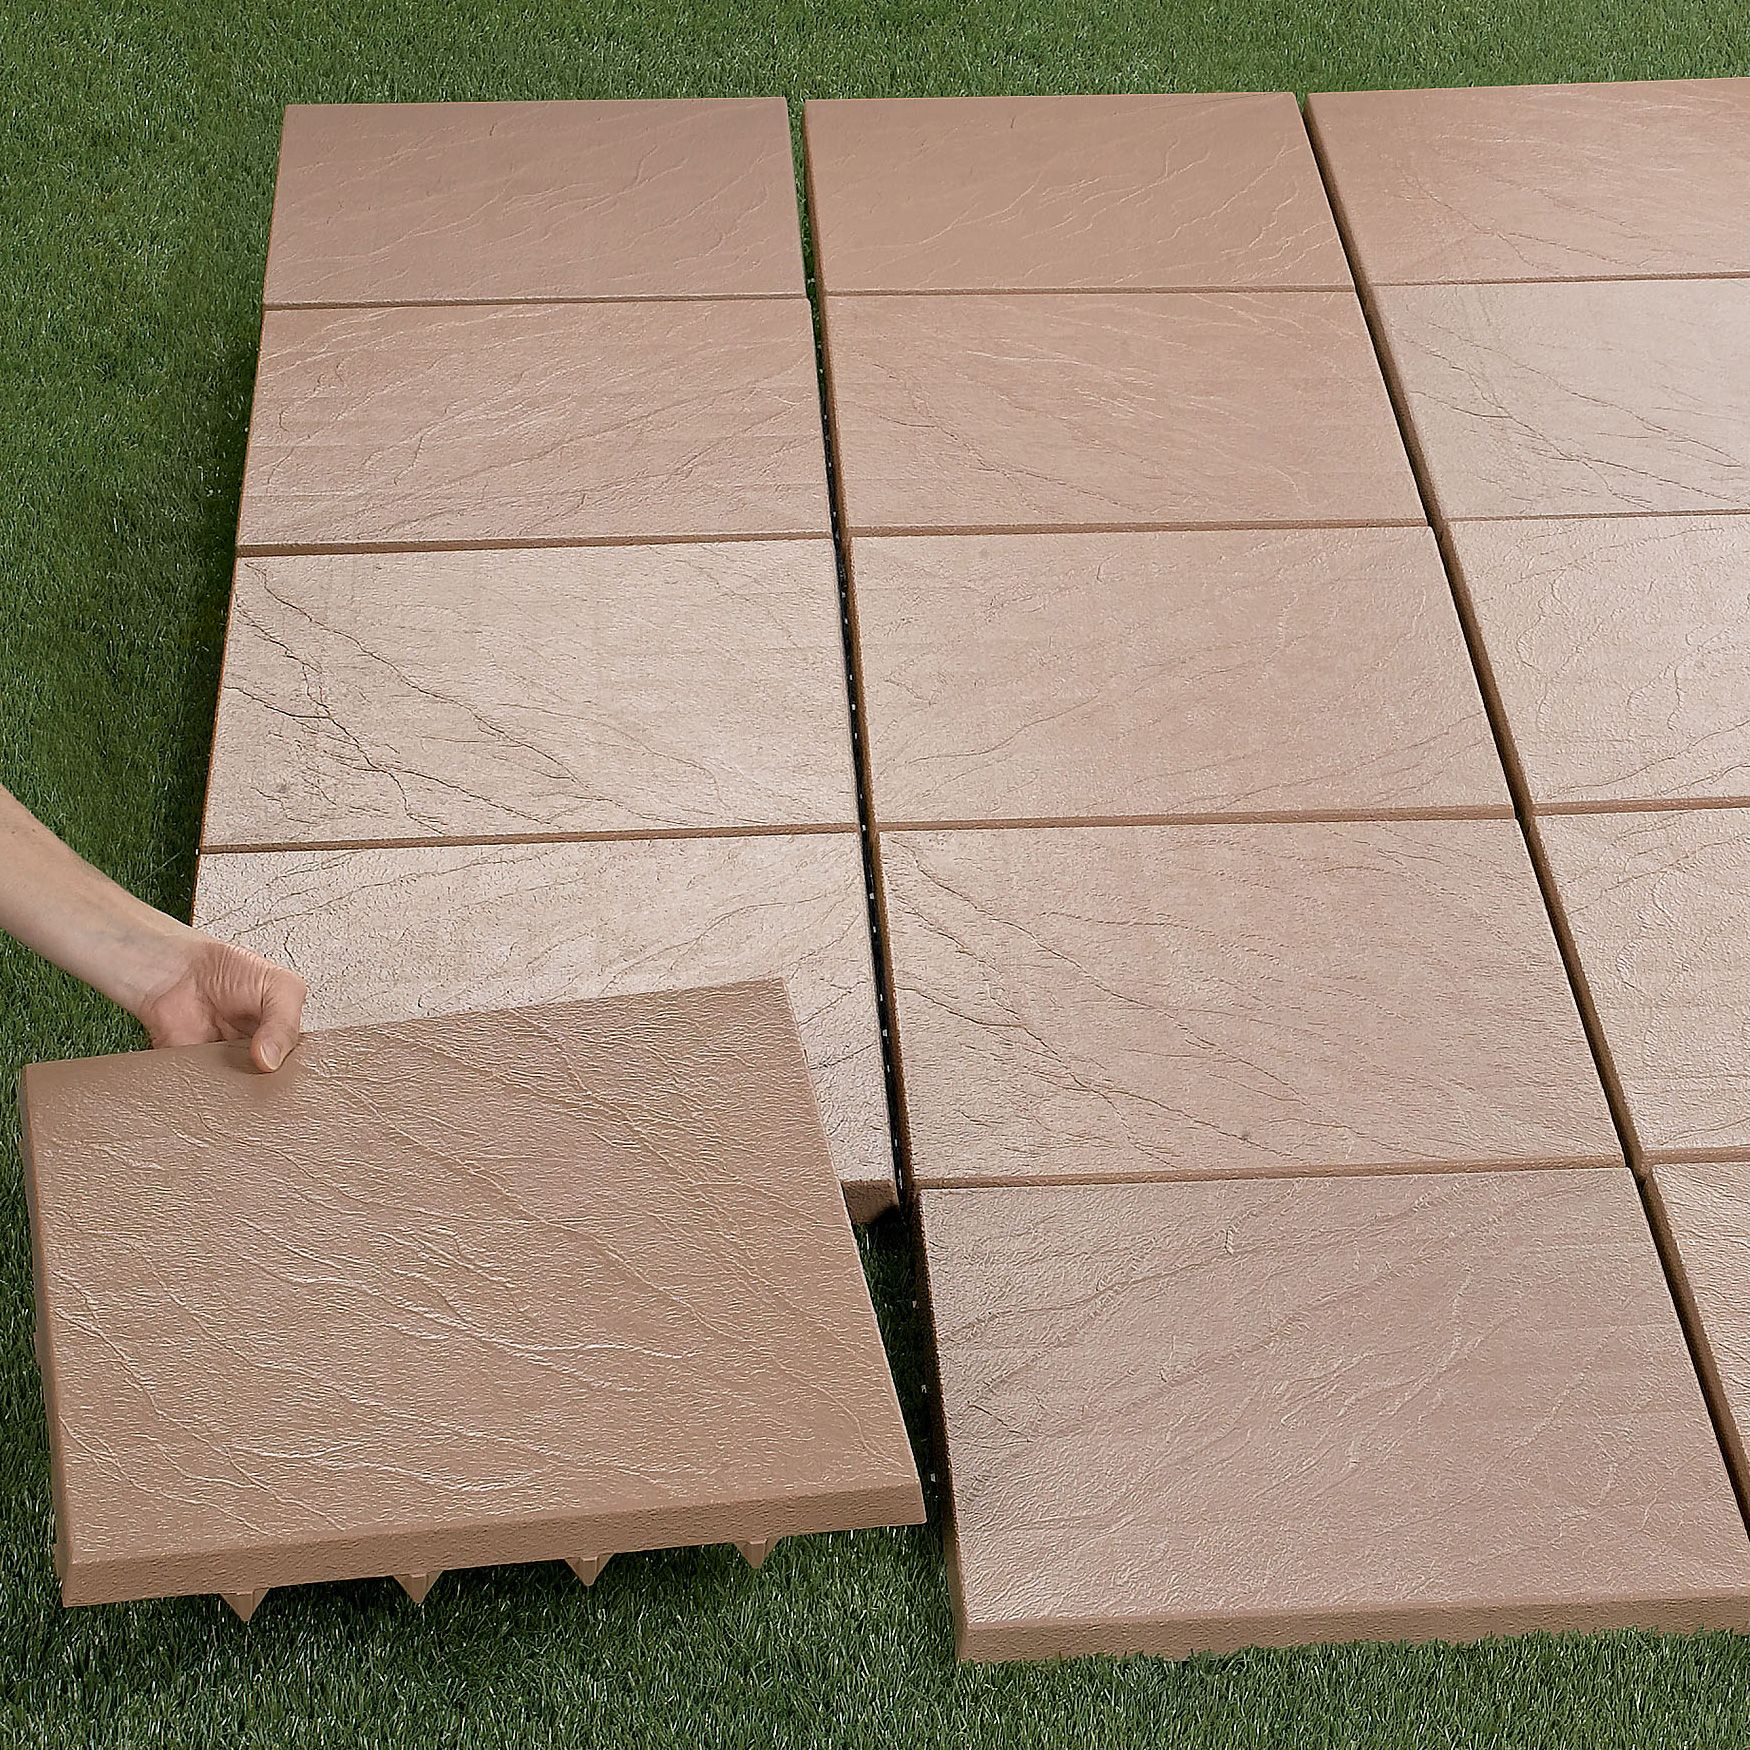 20 Patio Tiles 236 Create An Instant Patio On Any Grass